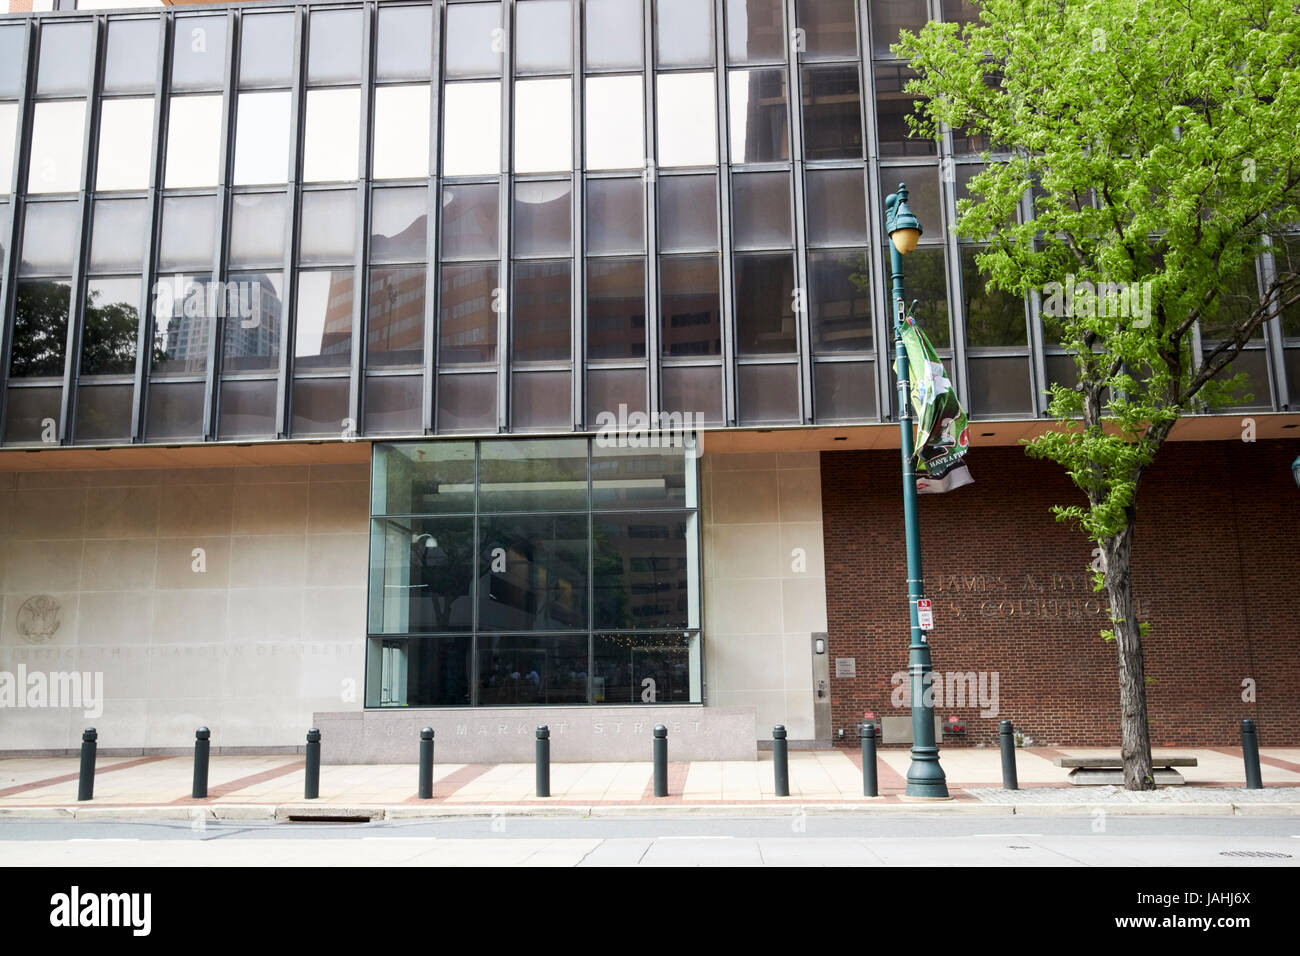 entrance to James A Byrne U.S. Courthouse building Philadelphia USA - Stock Image